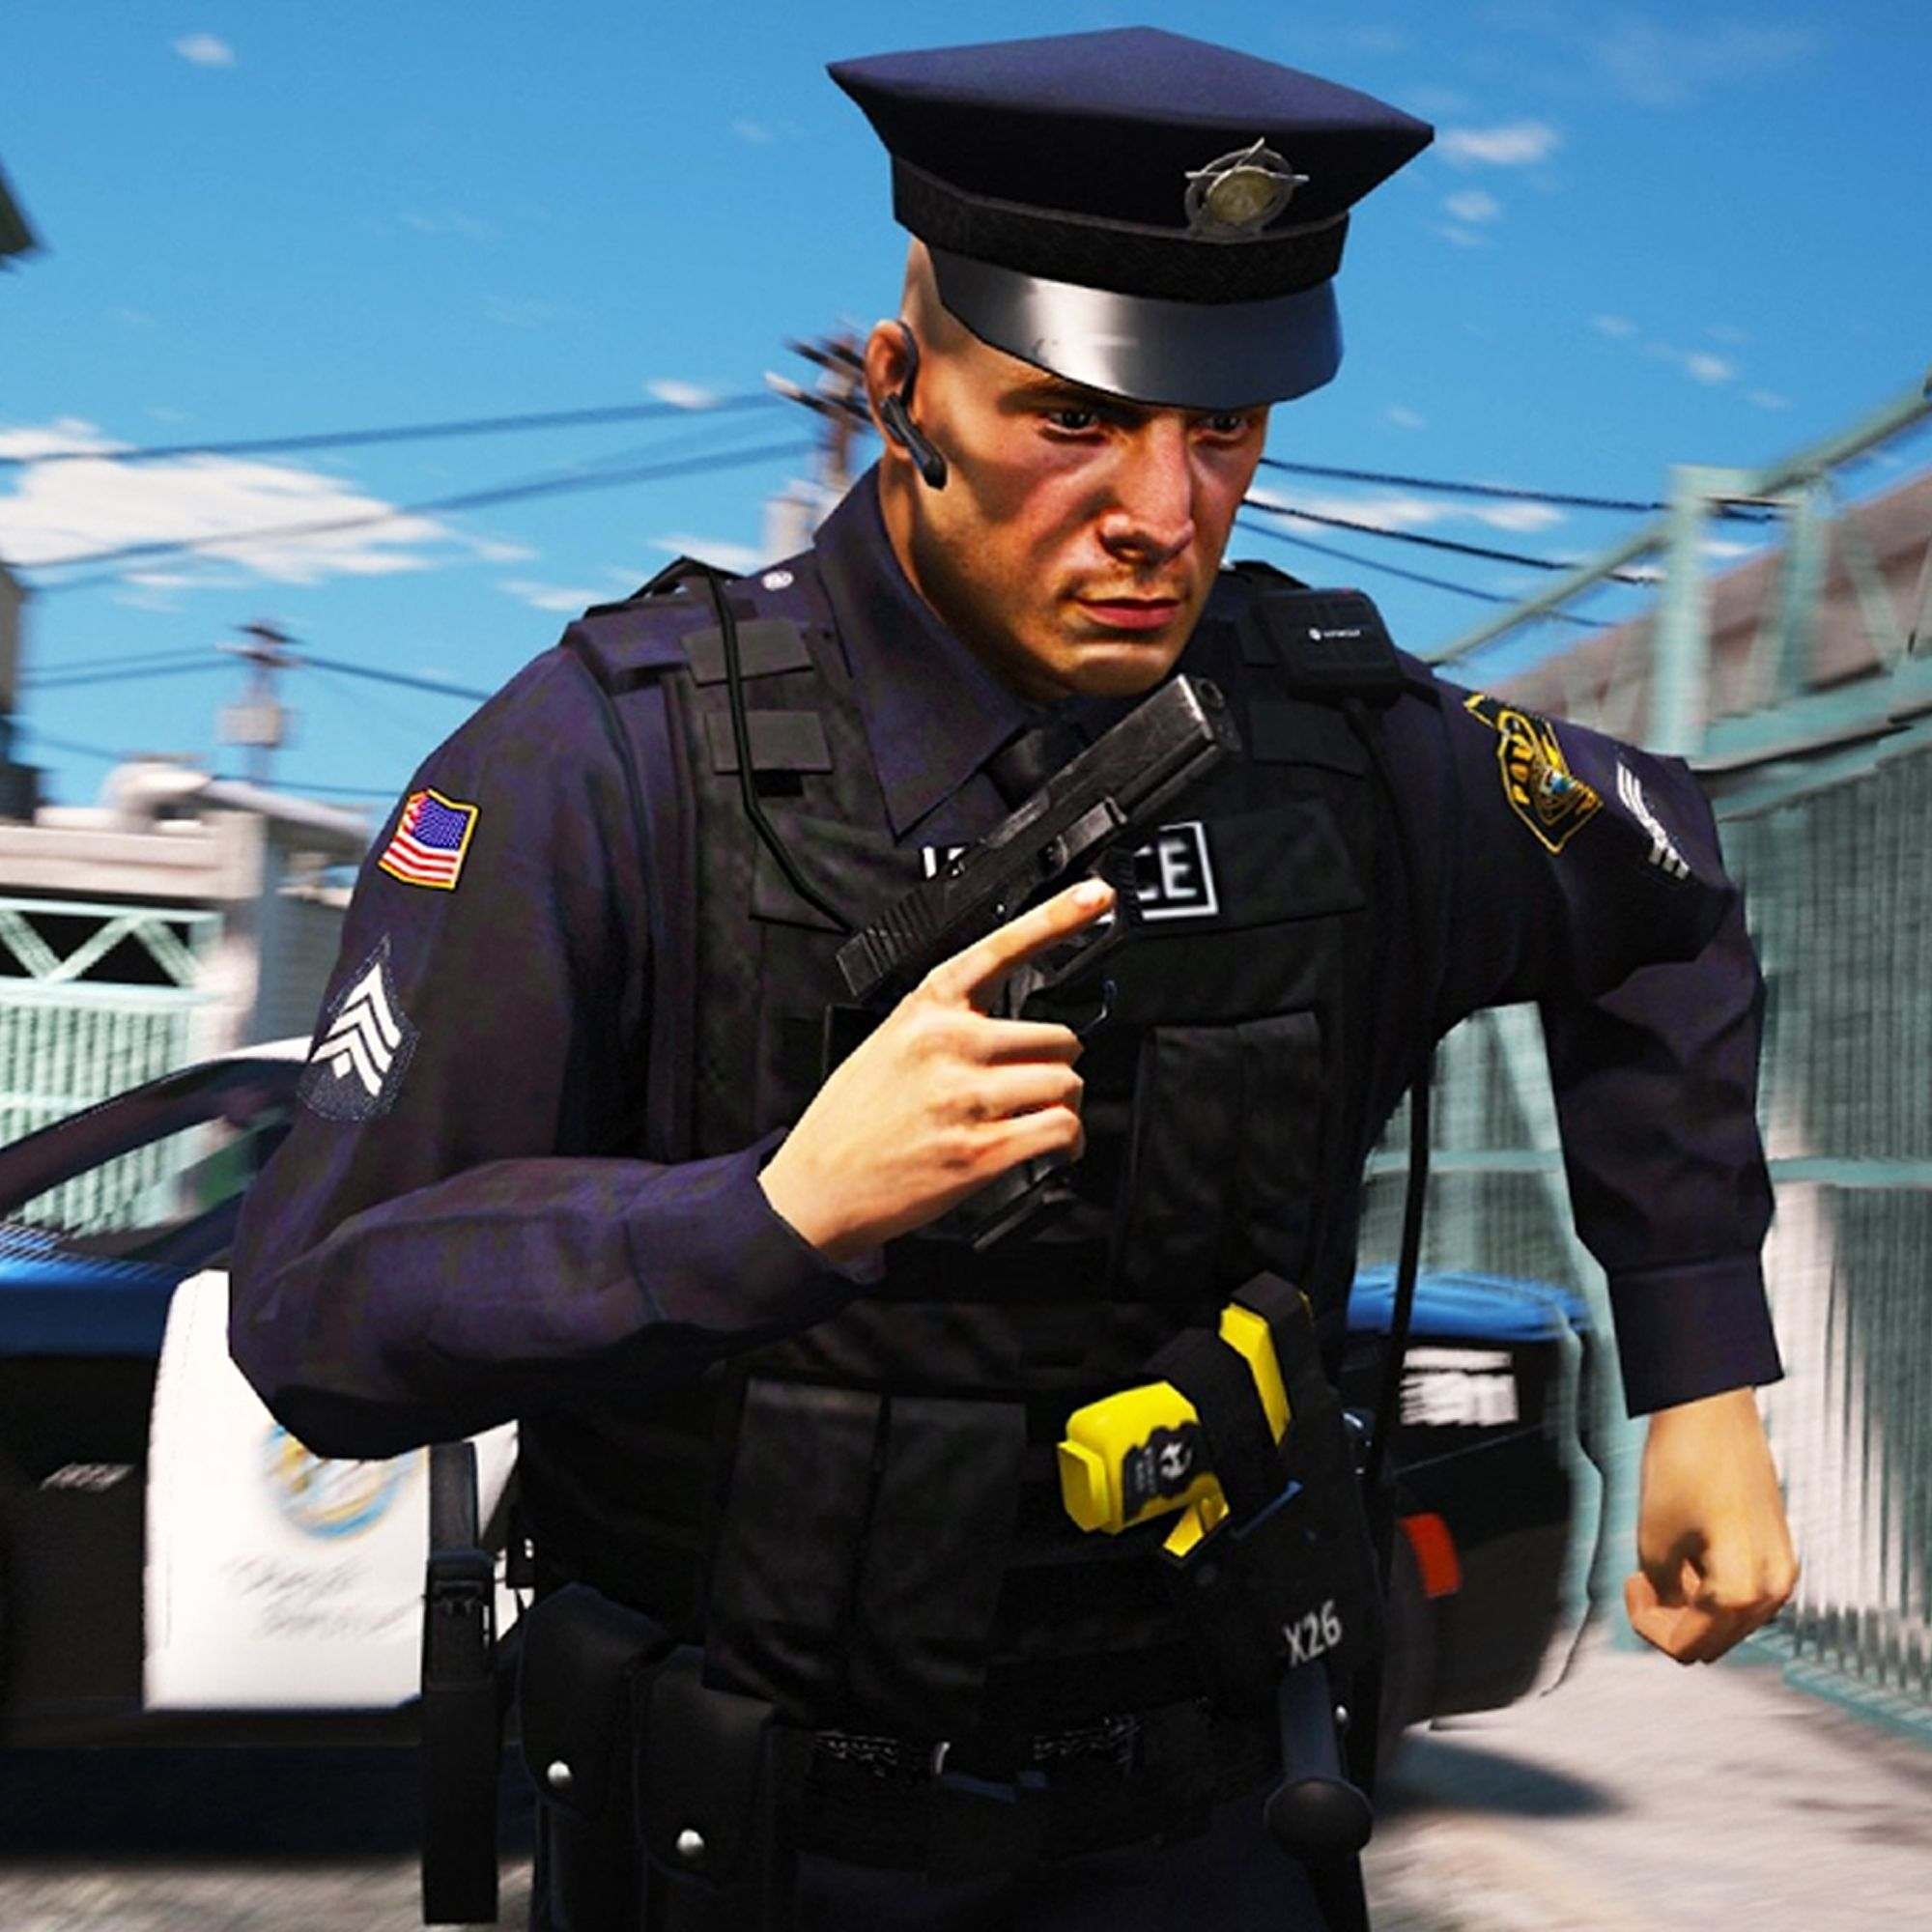 How To Become A Cop In Gta 5 Complete Guide In 2021 Becoming A Cop Gta 5 Gta